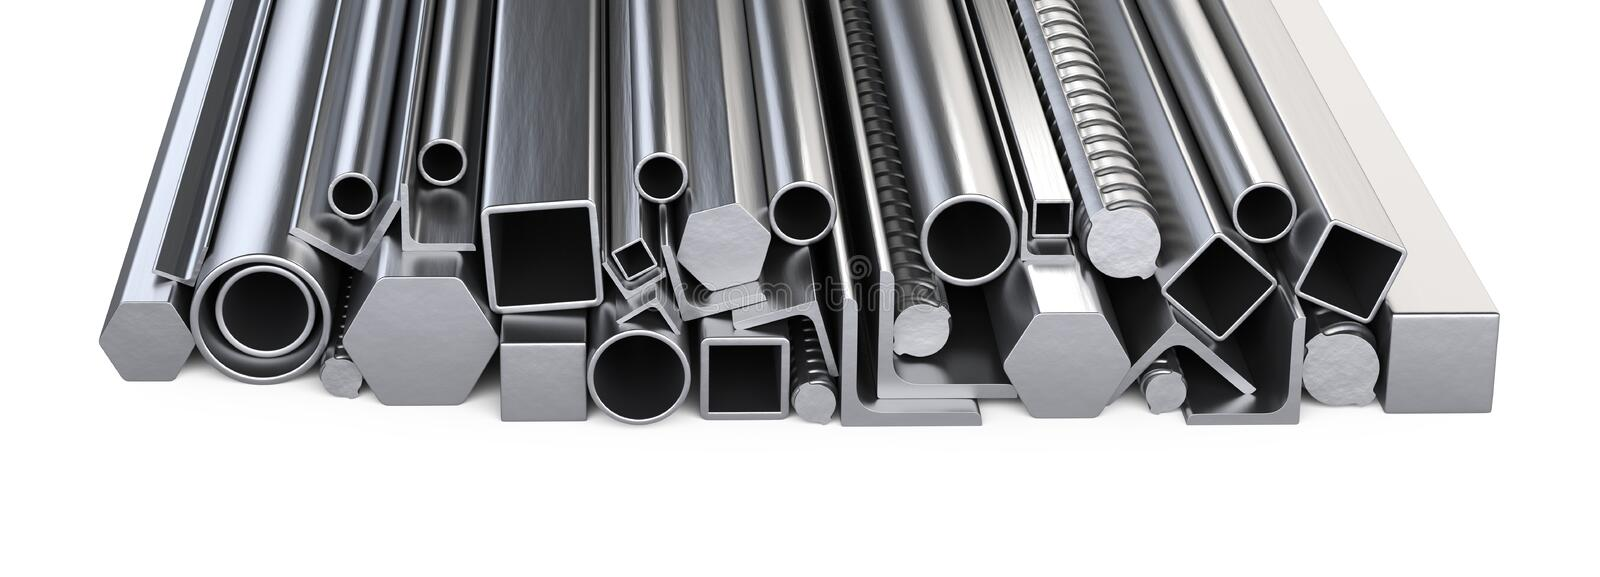 Metalick profiles and pipes stack. Warehouse for construction ma royalty free stock image